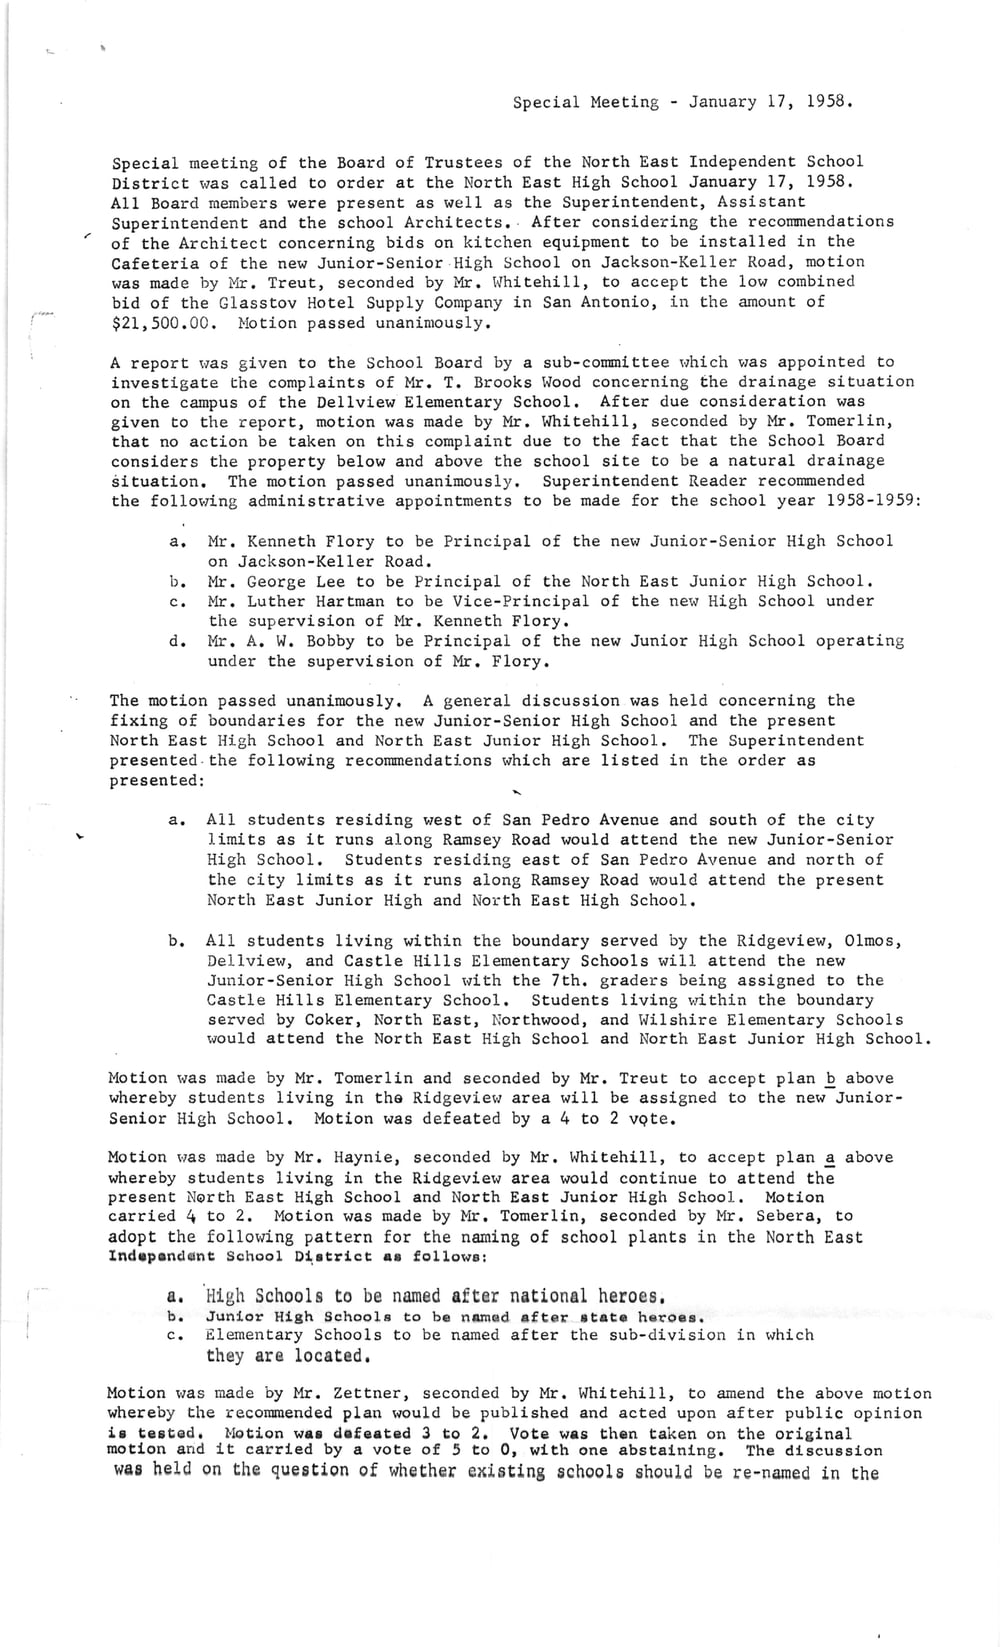 "Memo from 1958 NEISD meeting approving naming high school after ""national heroes."""